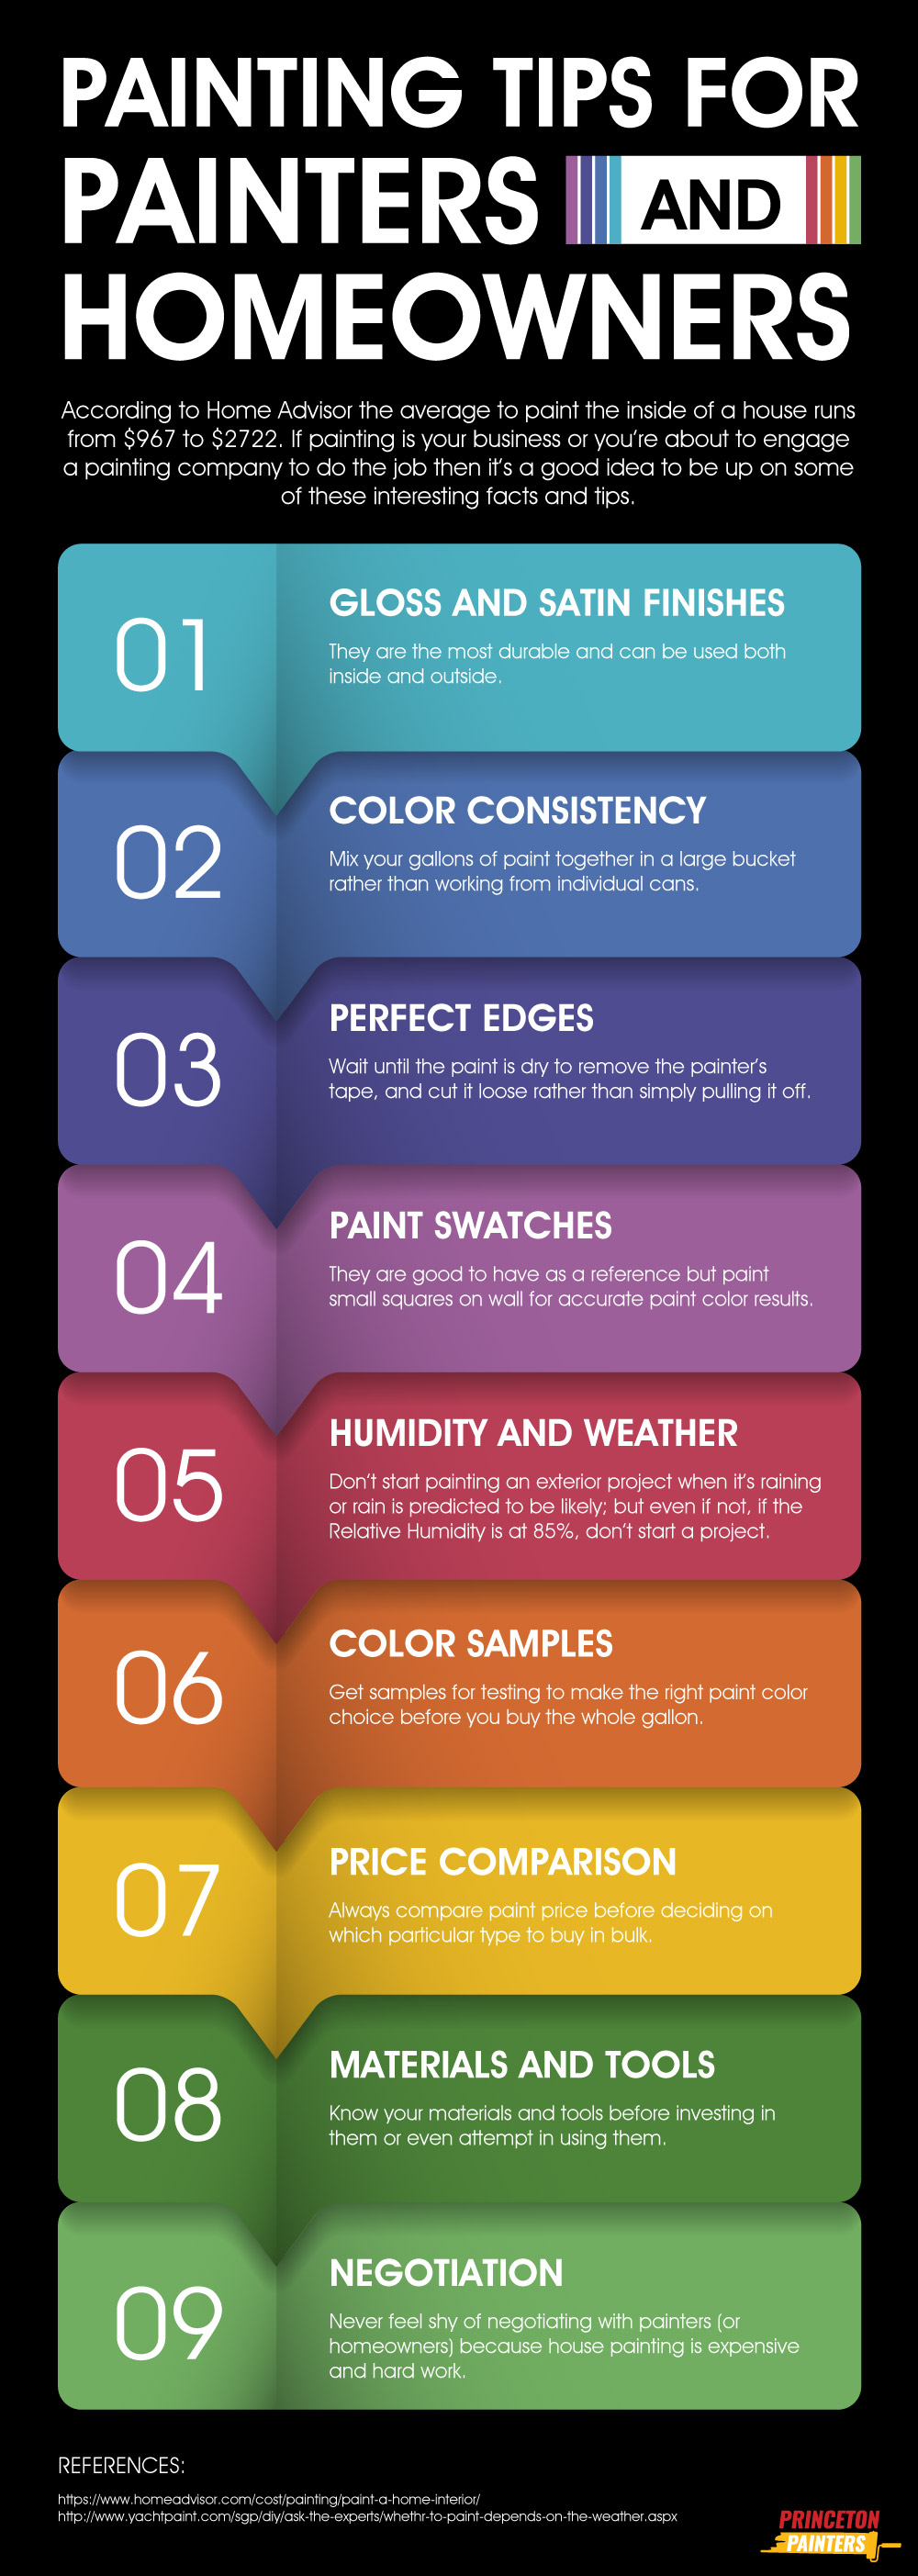 Painting Tips For Painters and Homeowners